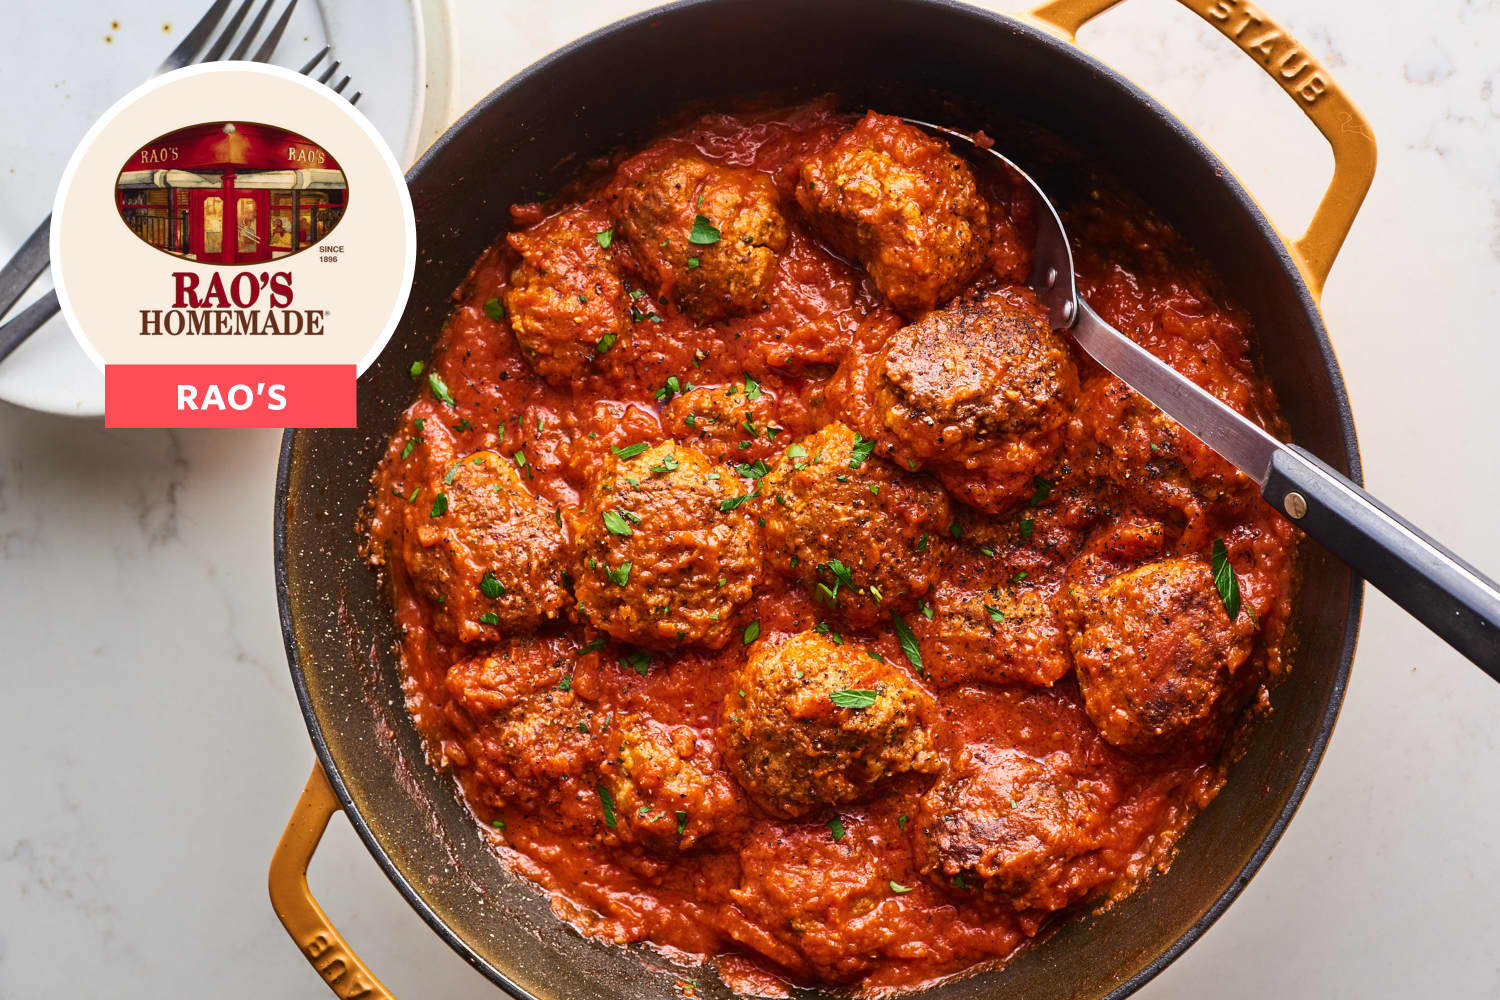 Is the Rao's Family Meatball Recipe As Good As Their Sauce? I Tried It to Find Out